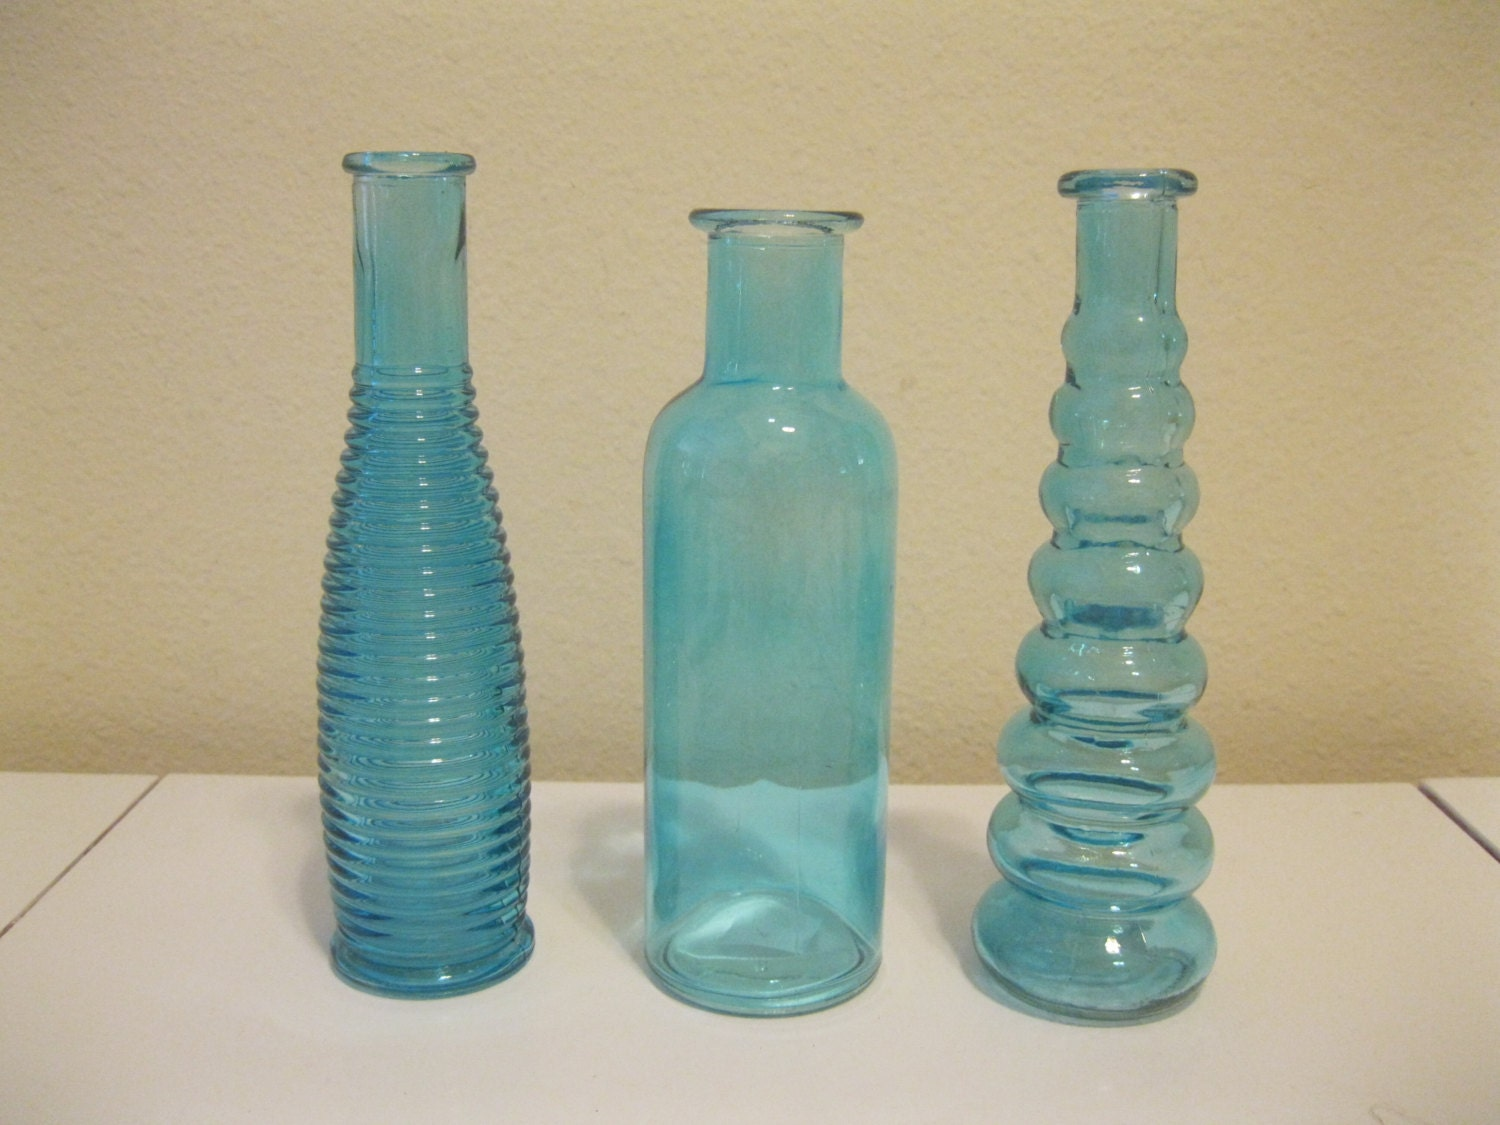 3blue Decorative Colored Glass Bottles Floral Bud Vase. Ac Moore Cake Decorating. Rooms For Rent Austin Tx. Girl Teen Rooms. Girl Decorations. Racing Decorations. Home Decor Apps. Living Room Curtains. Wall Decor Set Of 3